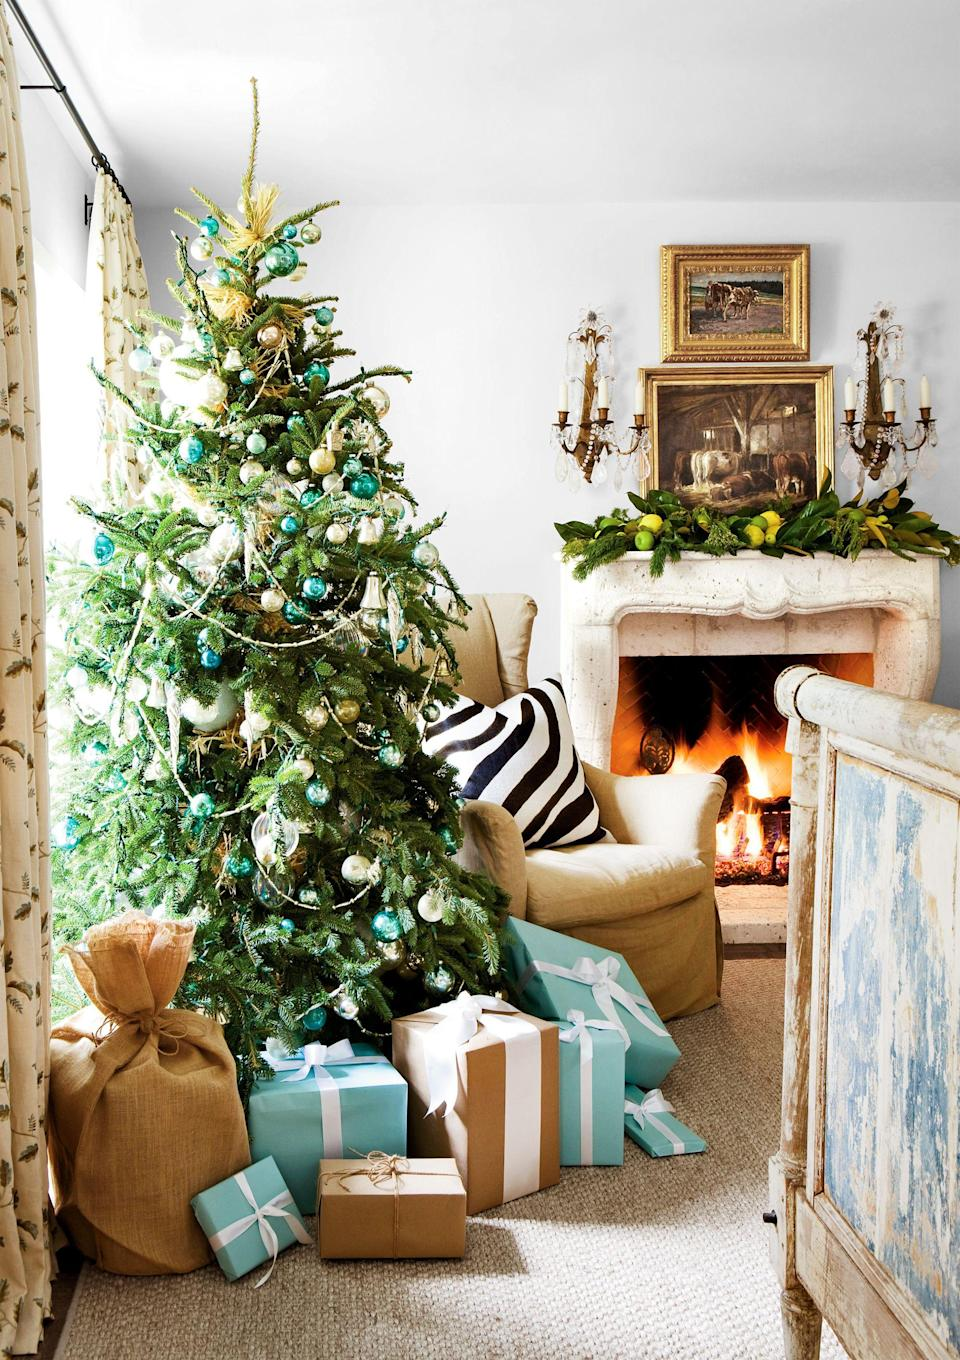 "<p>You know what makes the best time of year even better? Decking out your house with <a href=""https://www.housebeautiful.com/entertaining/holidays-celebrations/tips/g2804/outdoor-christmas-decorations/"" rel=""nofollow noopener"" target=""_blank"" data-ylk=""slk:Christmas decorations"" class=""link rapid-noclick-resp"">Christmas decorations</a> that set the mood. To get every inch of your home into the <a href=""https://www.housebeautiful.com/entertaining/table-decor/g4005/christmas-centerpieces/"" rel=""nofollow noopener"" target=""_blank"" data-ylk=""slk:holiday"" class=""link rapid-noclick-resp"">holiday</a> spirit, take a cue from these creative and <a href=""https://www.housebeautiful.com/entertaining/holidays-celebrations/g2787/christmas-wreaths/"" rel=""nofollow noopener"" target=""_blank"" data-ylk=""slk:festive decorating"" class=""link rapid-noclick-resp"">festive decorating</a> ideas for spaces big and small. Whether you prefer traditional decor or something a bit more out there, we guarantee you'll find something you want to recreate on this list—there are 105 Christmas decorating ideas, after all. And when you're ready to <a href=""https://www.housebeautiful.com/entertaining/holidays-celebrations/tips/g505/christmas-tree-decoration-ideas-pictures-1208/"" rel=""nofollow noopener"" target=""_blank"" data-ylk=""slk:trim your tree"" class=""link rapid-noclick-resp"">trim your tree</a>, we've got you covered with ideas, too.</p>"